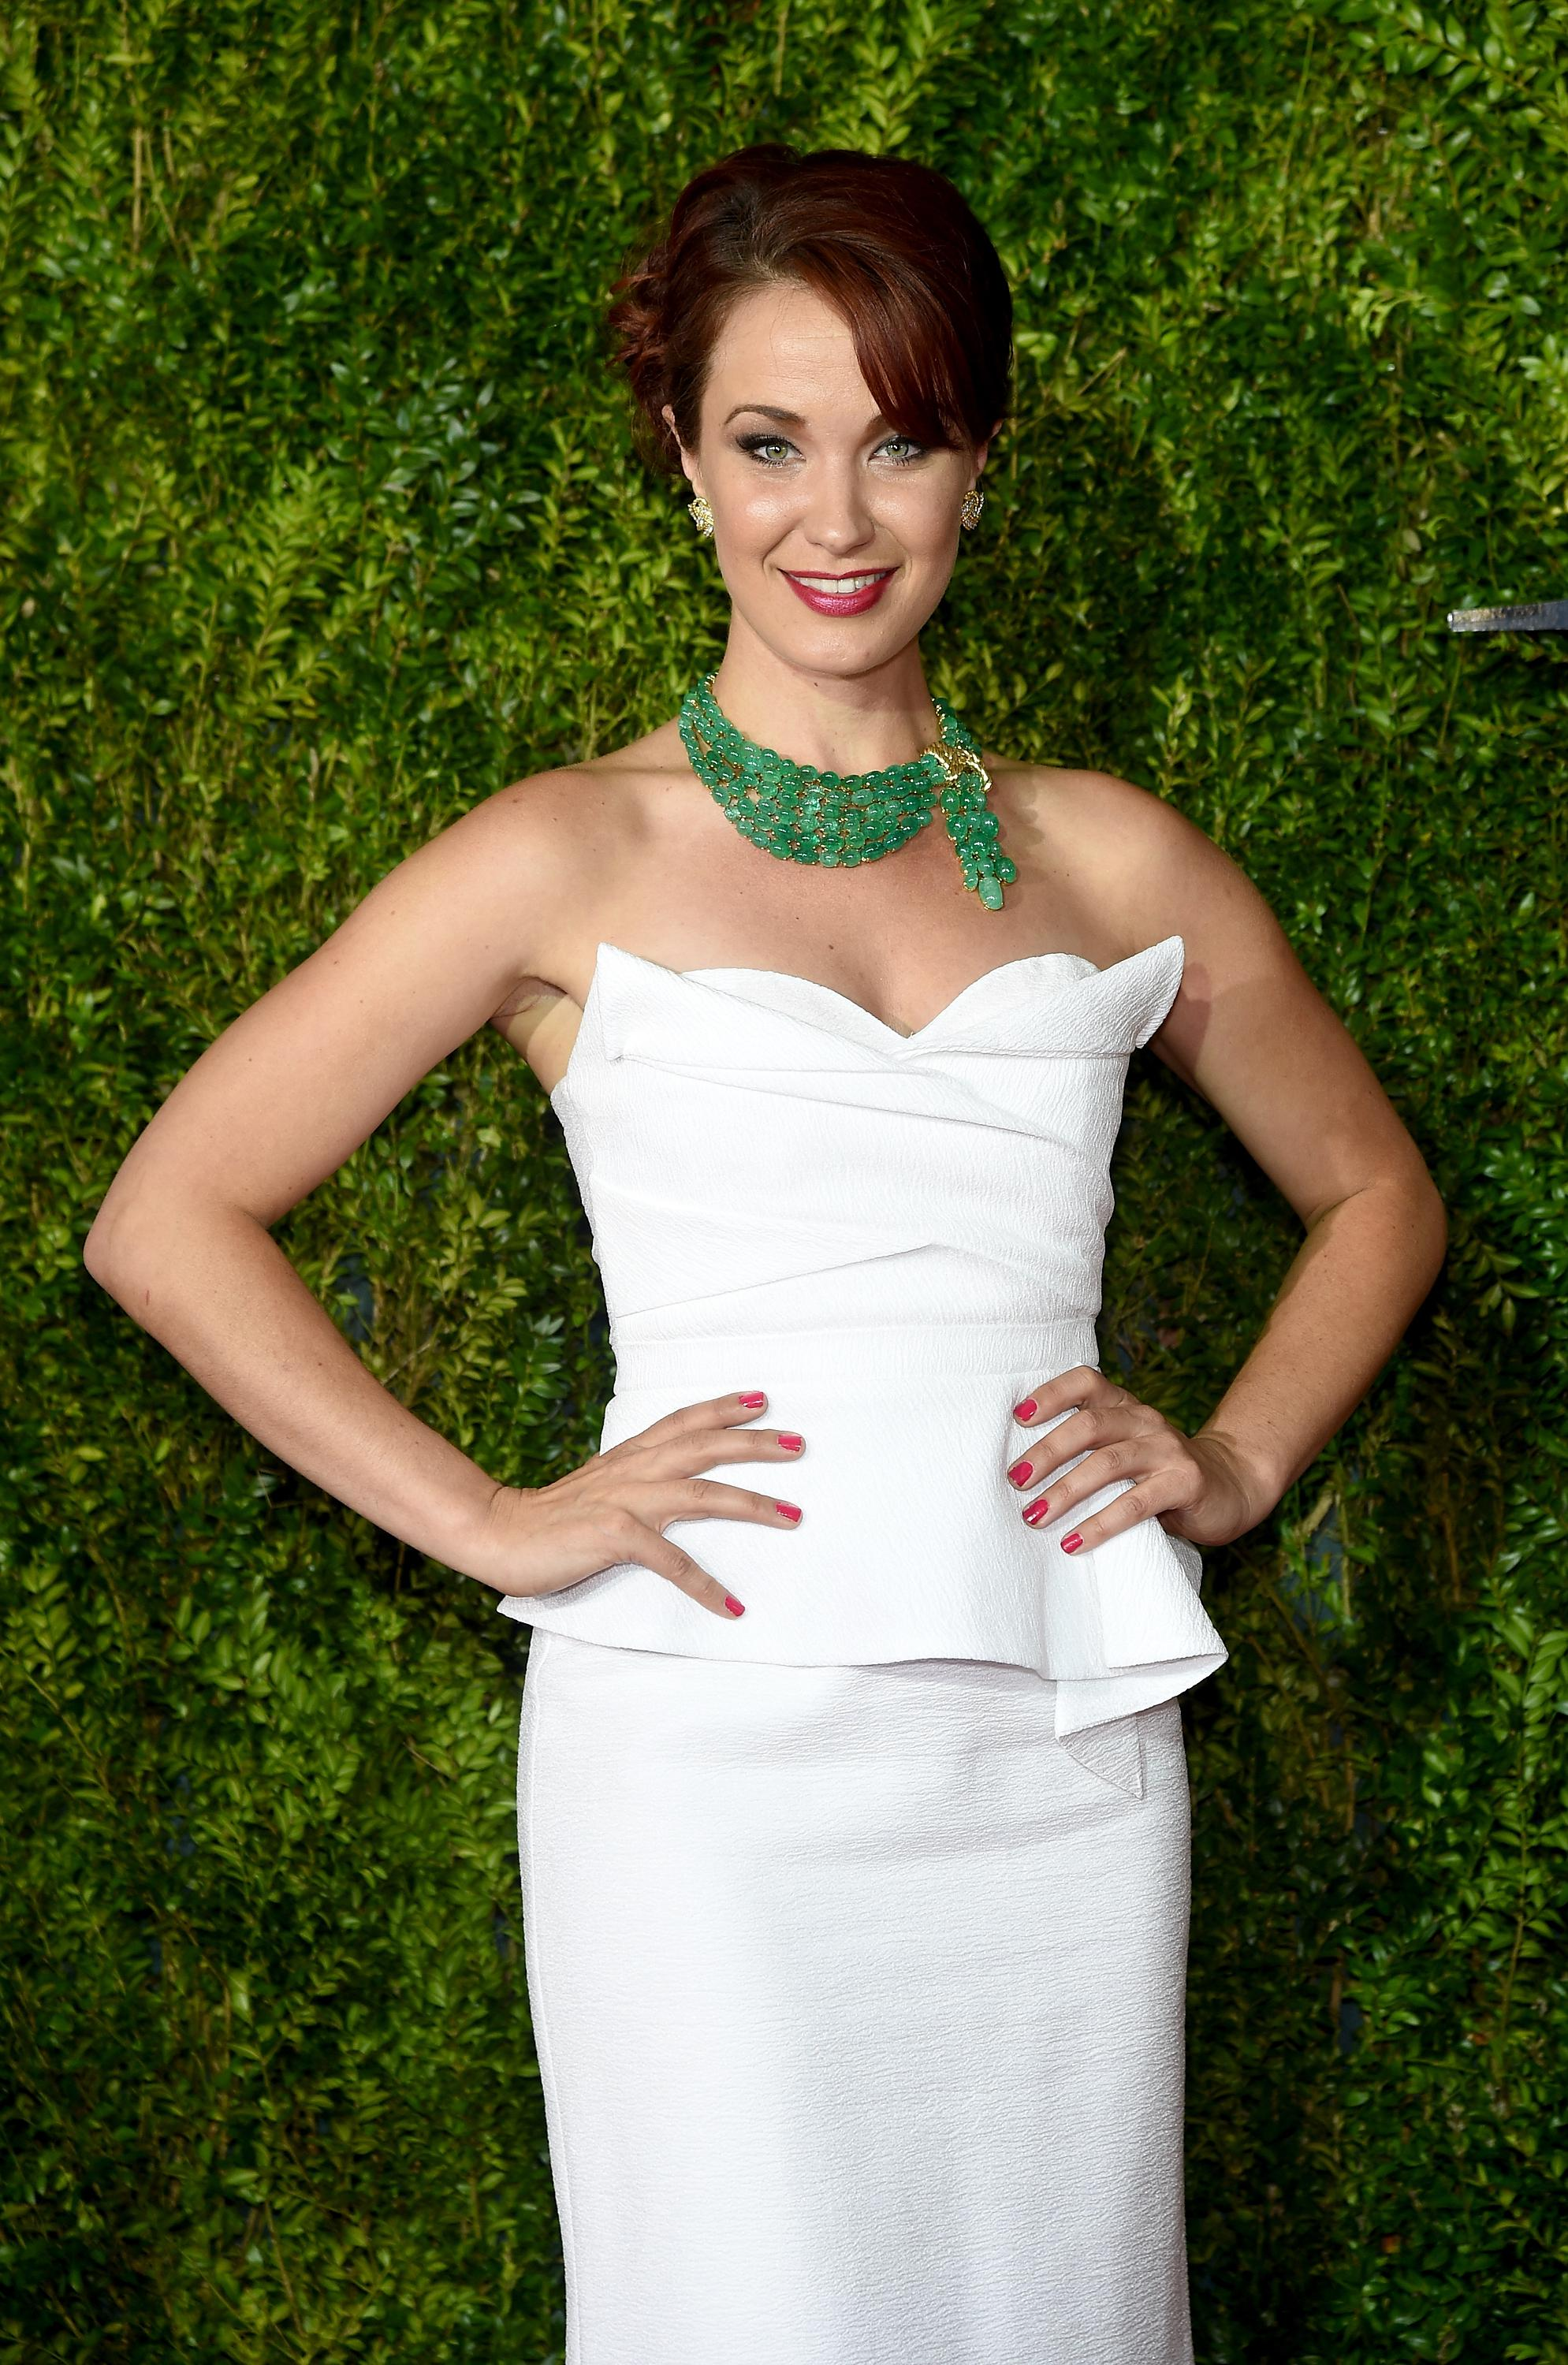 Sierra Boggess attends the 2015 Tony Awards at Radio City Music Hall on June 7, 2015 in New York City.